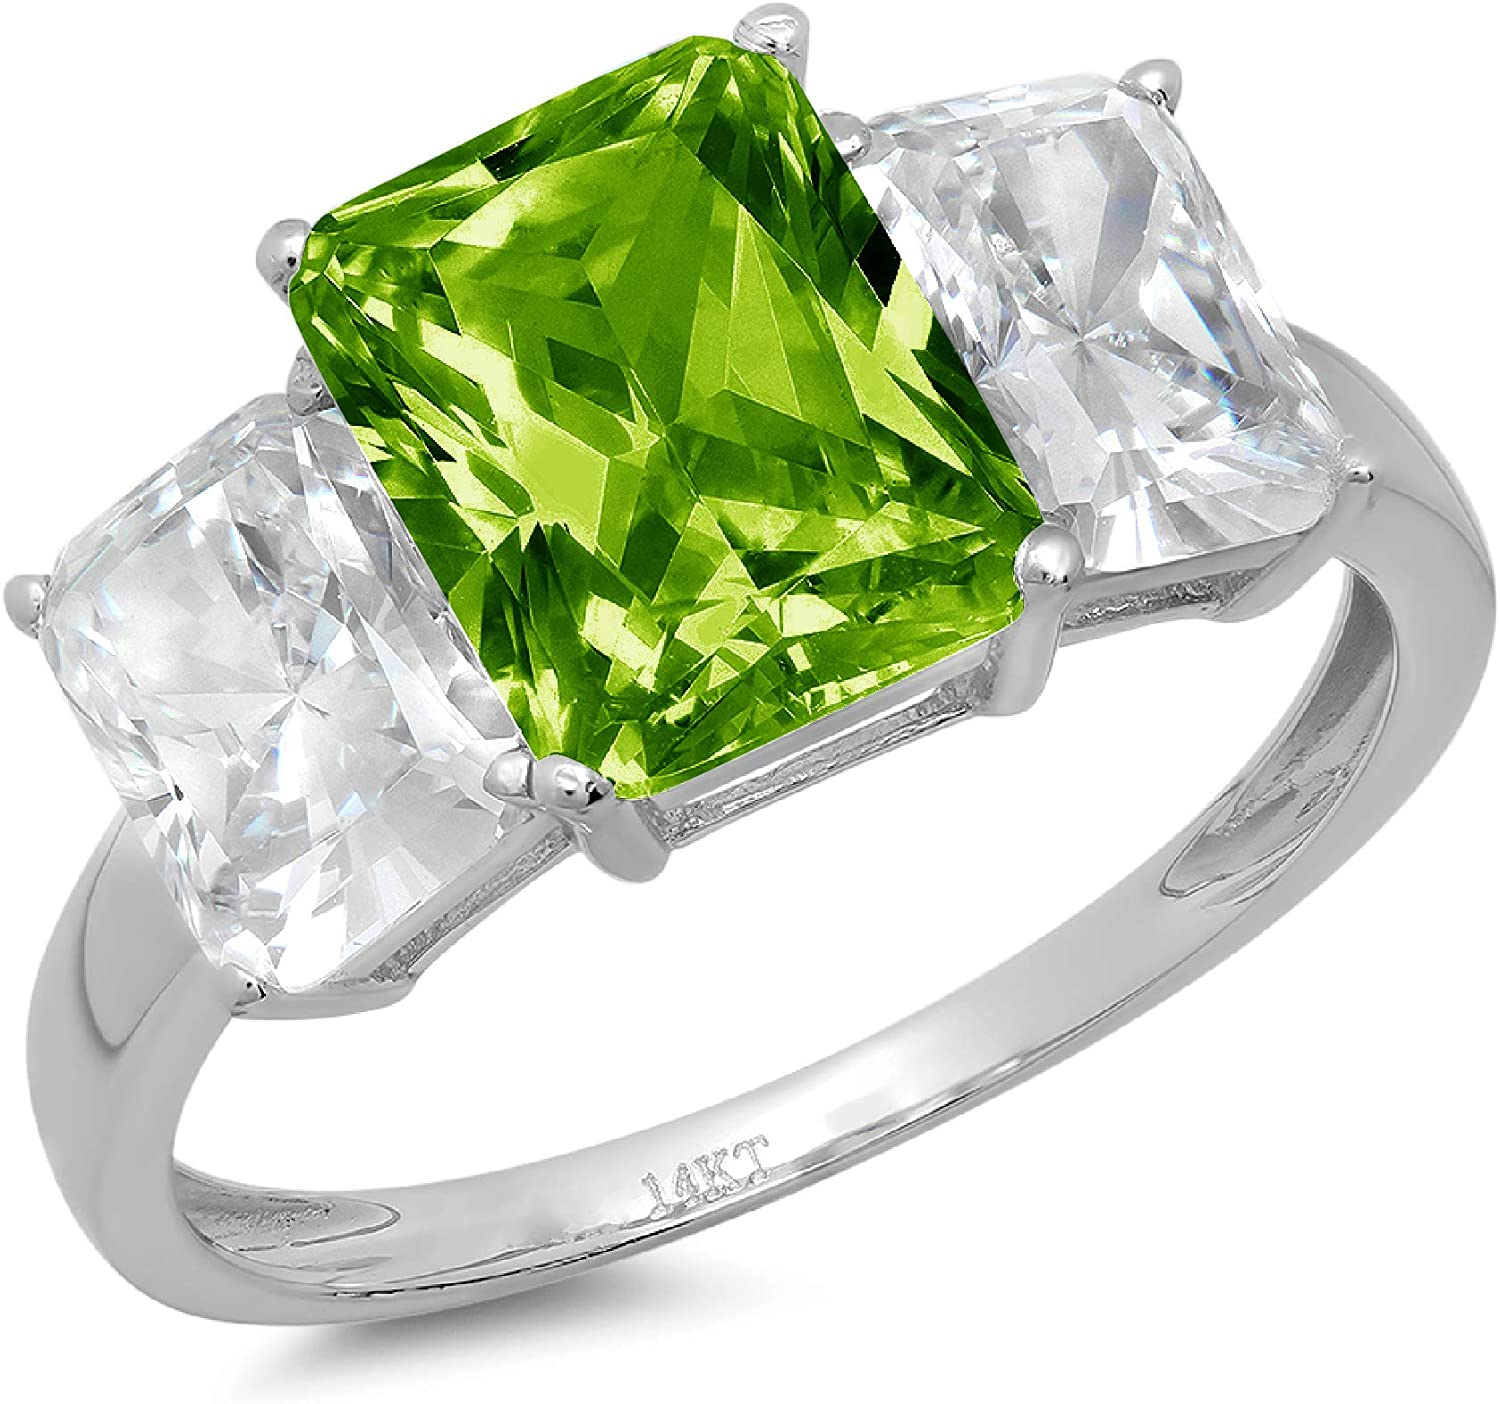 3.94ct Brilliant Emerald Cut 3 Stone Solitaire with Accent Designer Genuine Natural Vivid Green Peridot Gemstone Ideal VVS1 Engagement Promise Statement Anniversary Bridal Wedding ring 14k White Gold